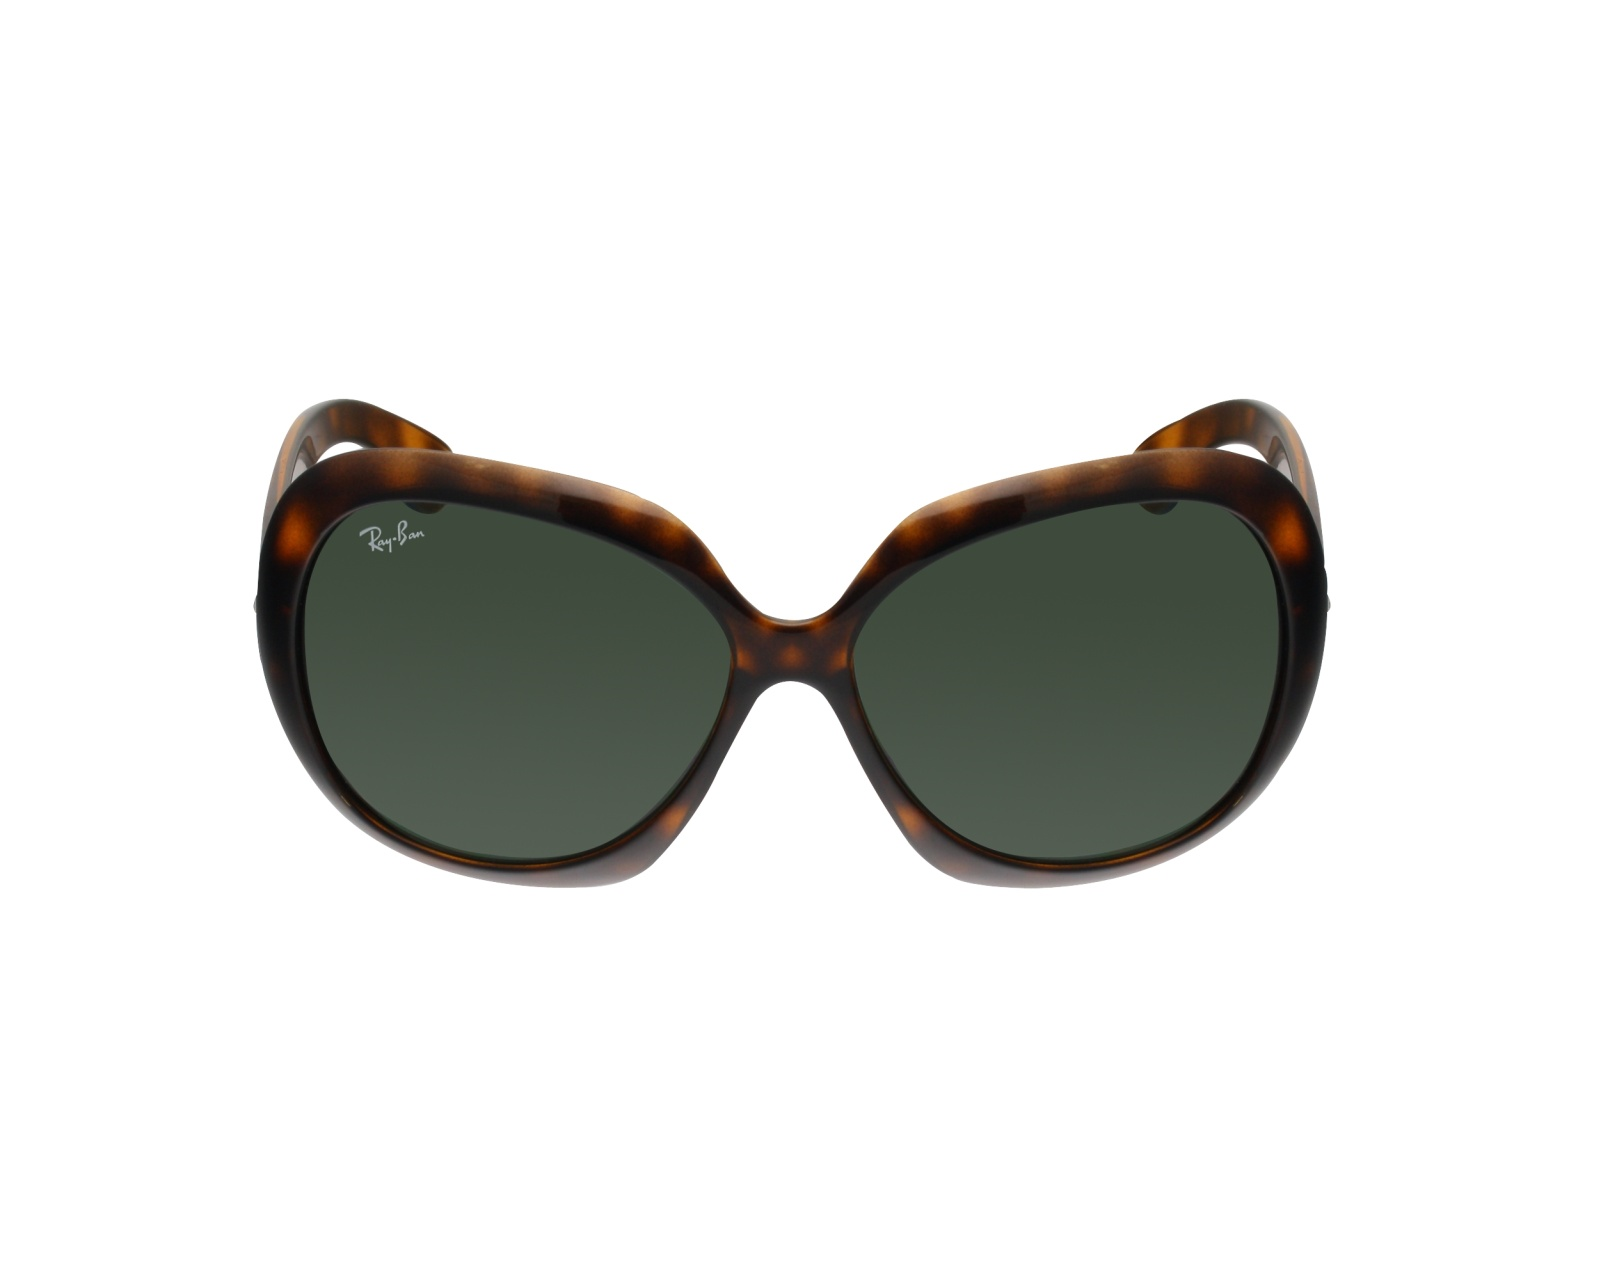 ray ban sunglasses jackie ohh ii rb 4098 710 71 60 visionet. Black Bedroom Furniture Sets. Home Design Ideas